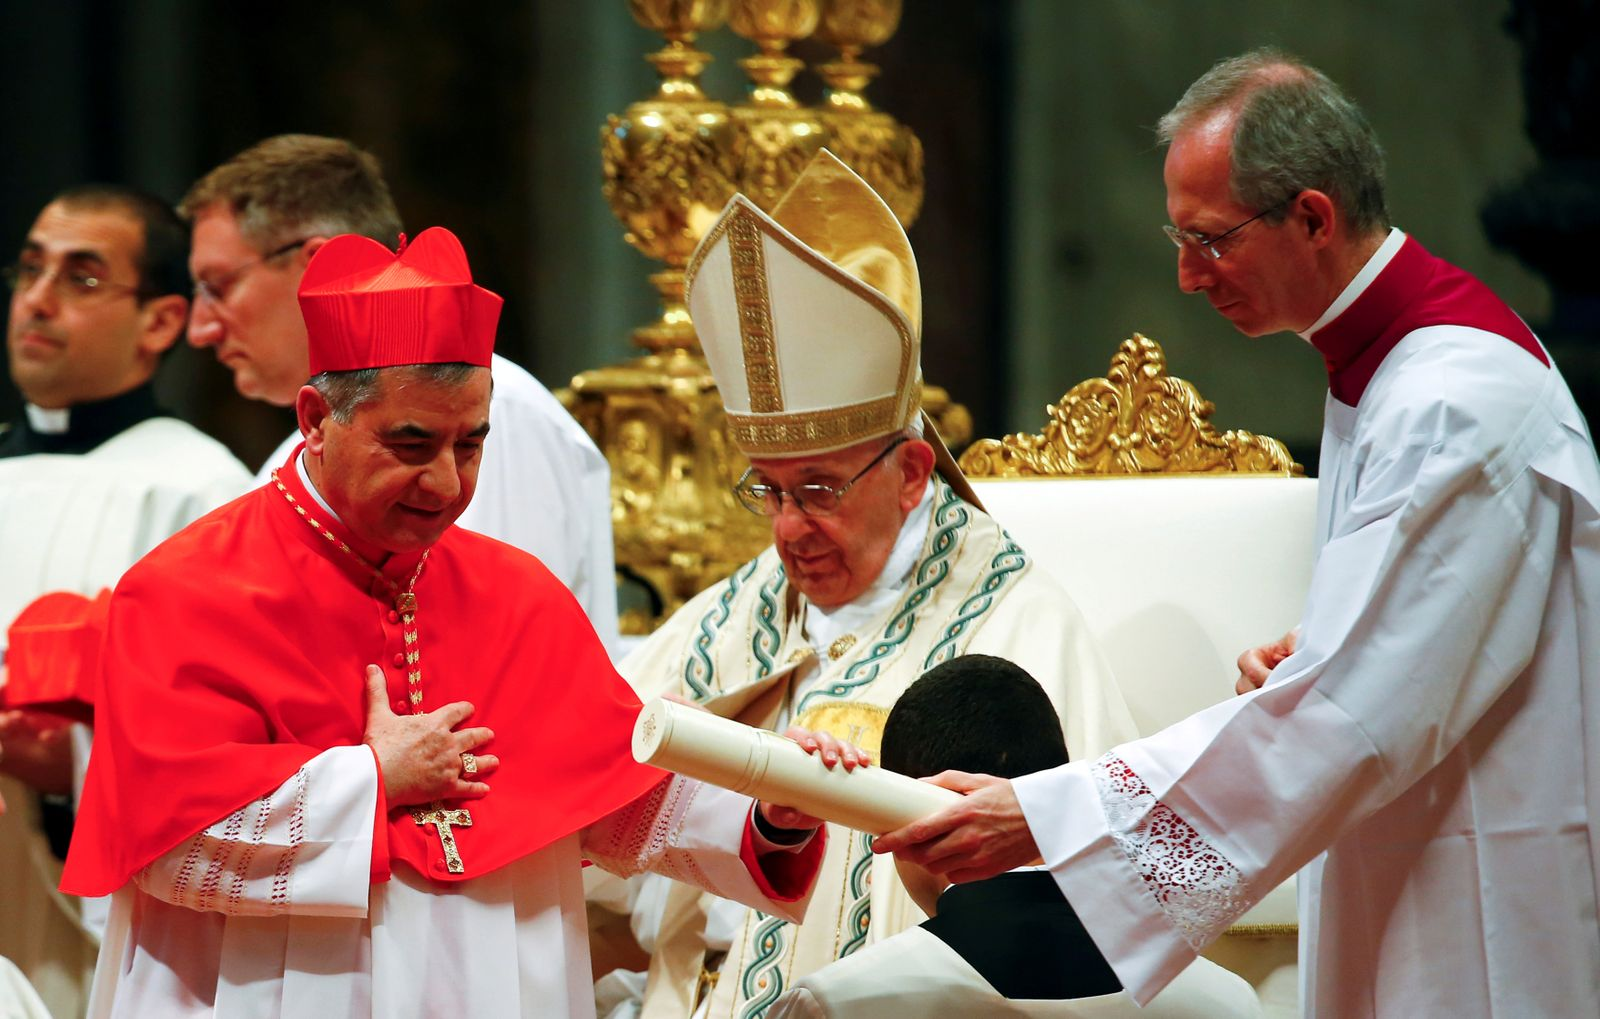 FILE PHOTO: New cardinal Giovanni Angelo Becciu of Italy is seen during a consistory ceremony to install 14 new cardinals in Saint Peter's Basilica at the Vatican